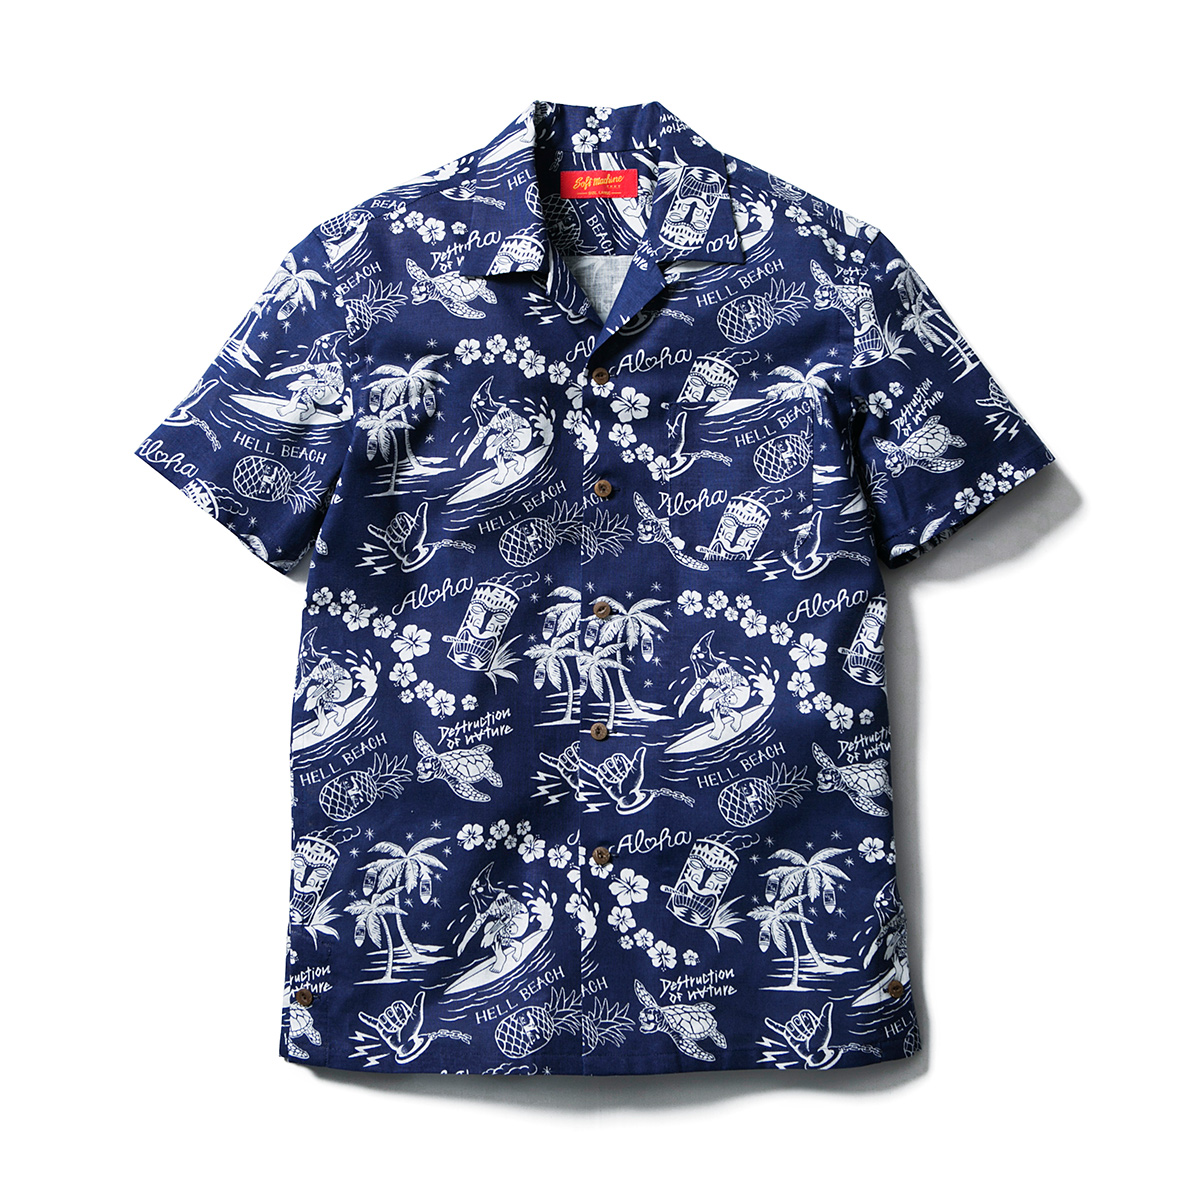 HELL BEACH SHIRTS S/S